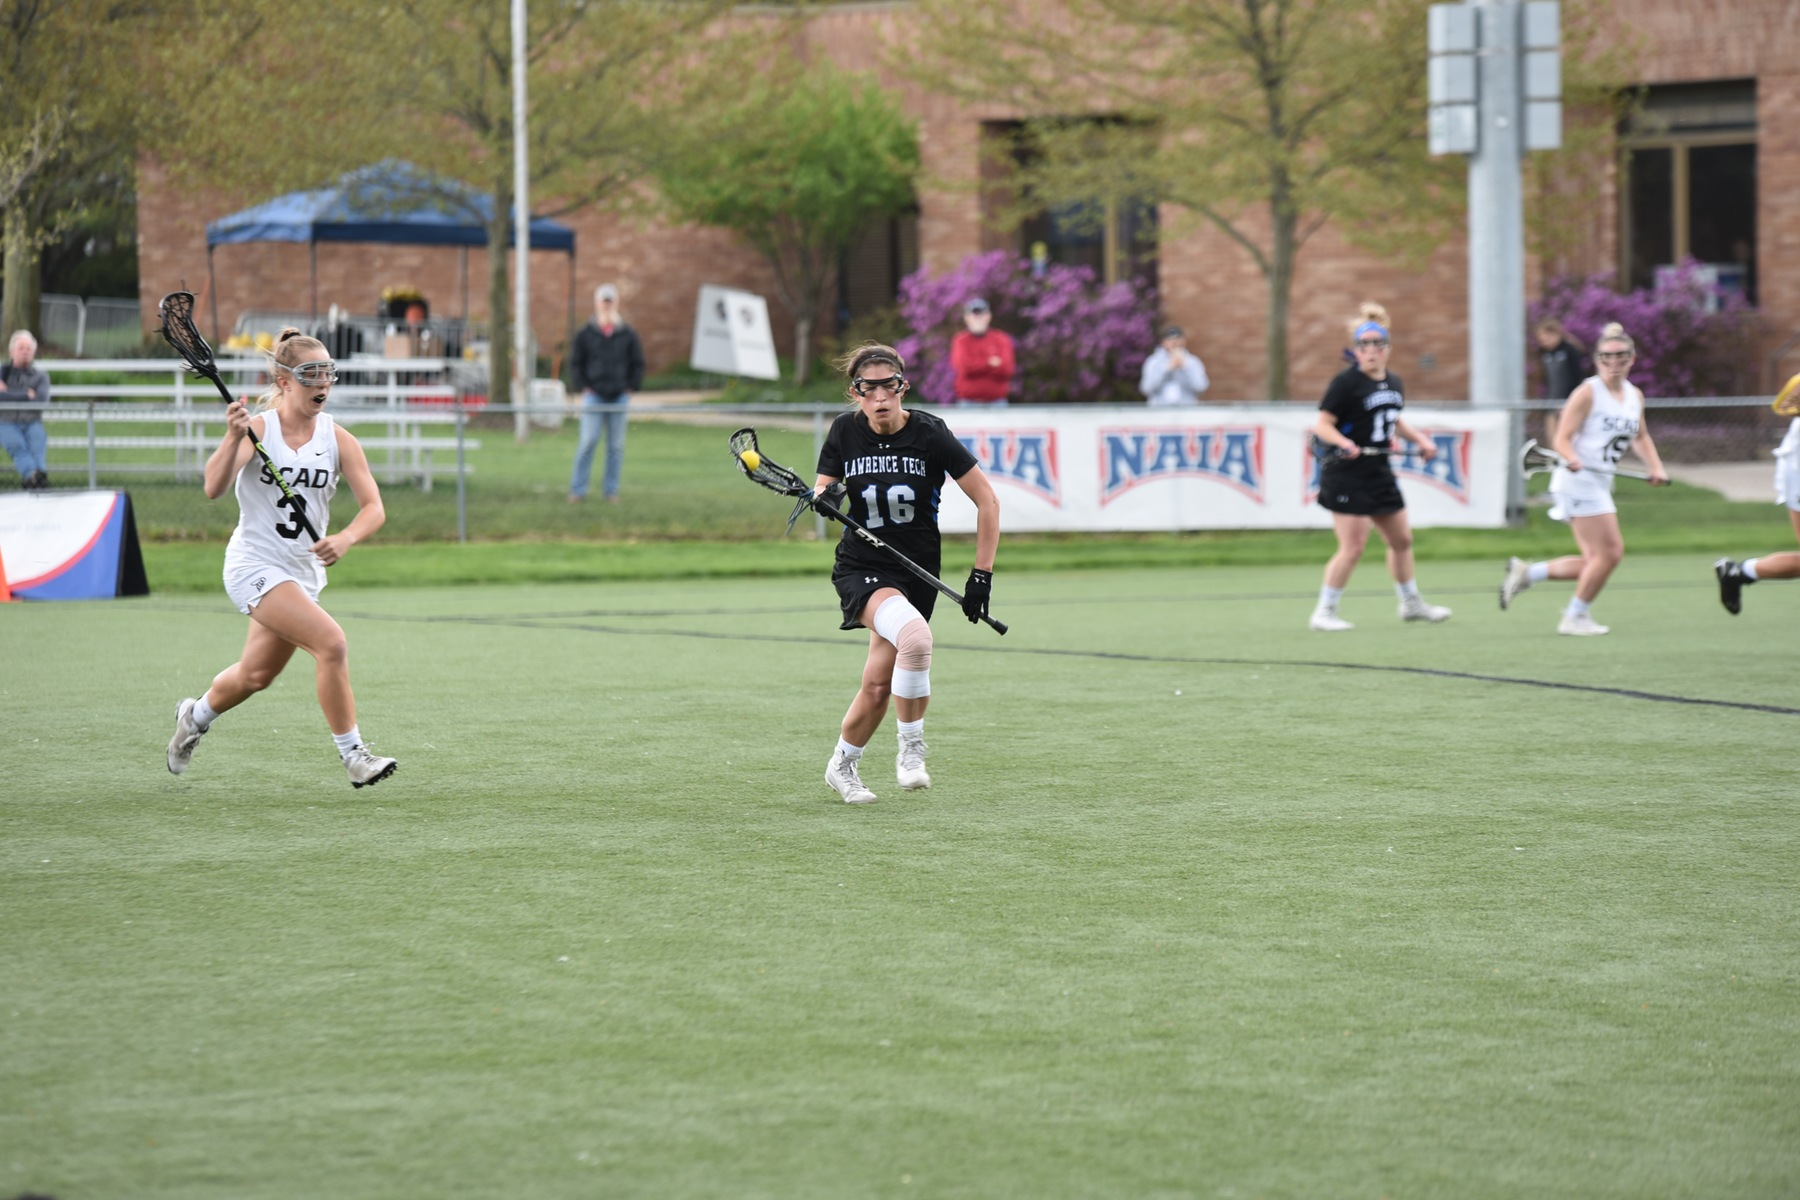 Women's Lacrosse Falls 22-10 in First Round of NAIA National Invitational to NO. 1 SCAD